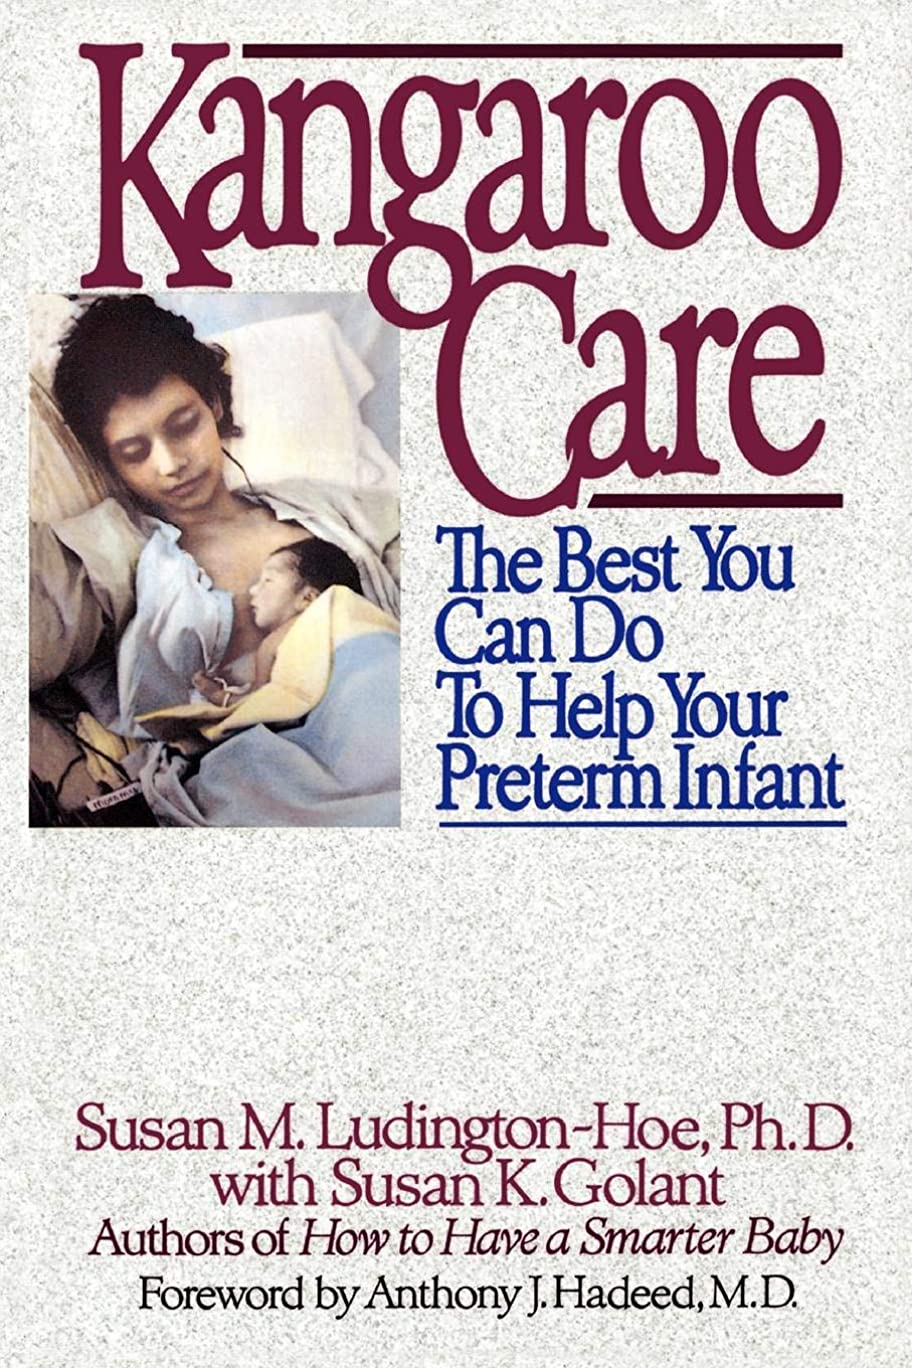 売り手オーストラリア人エクスタシーKangaroo Care: The Best You Can Do to Help Your Preterm Infant